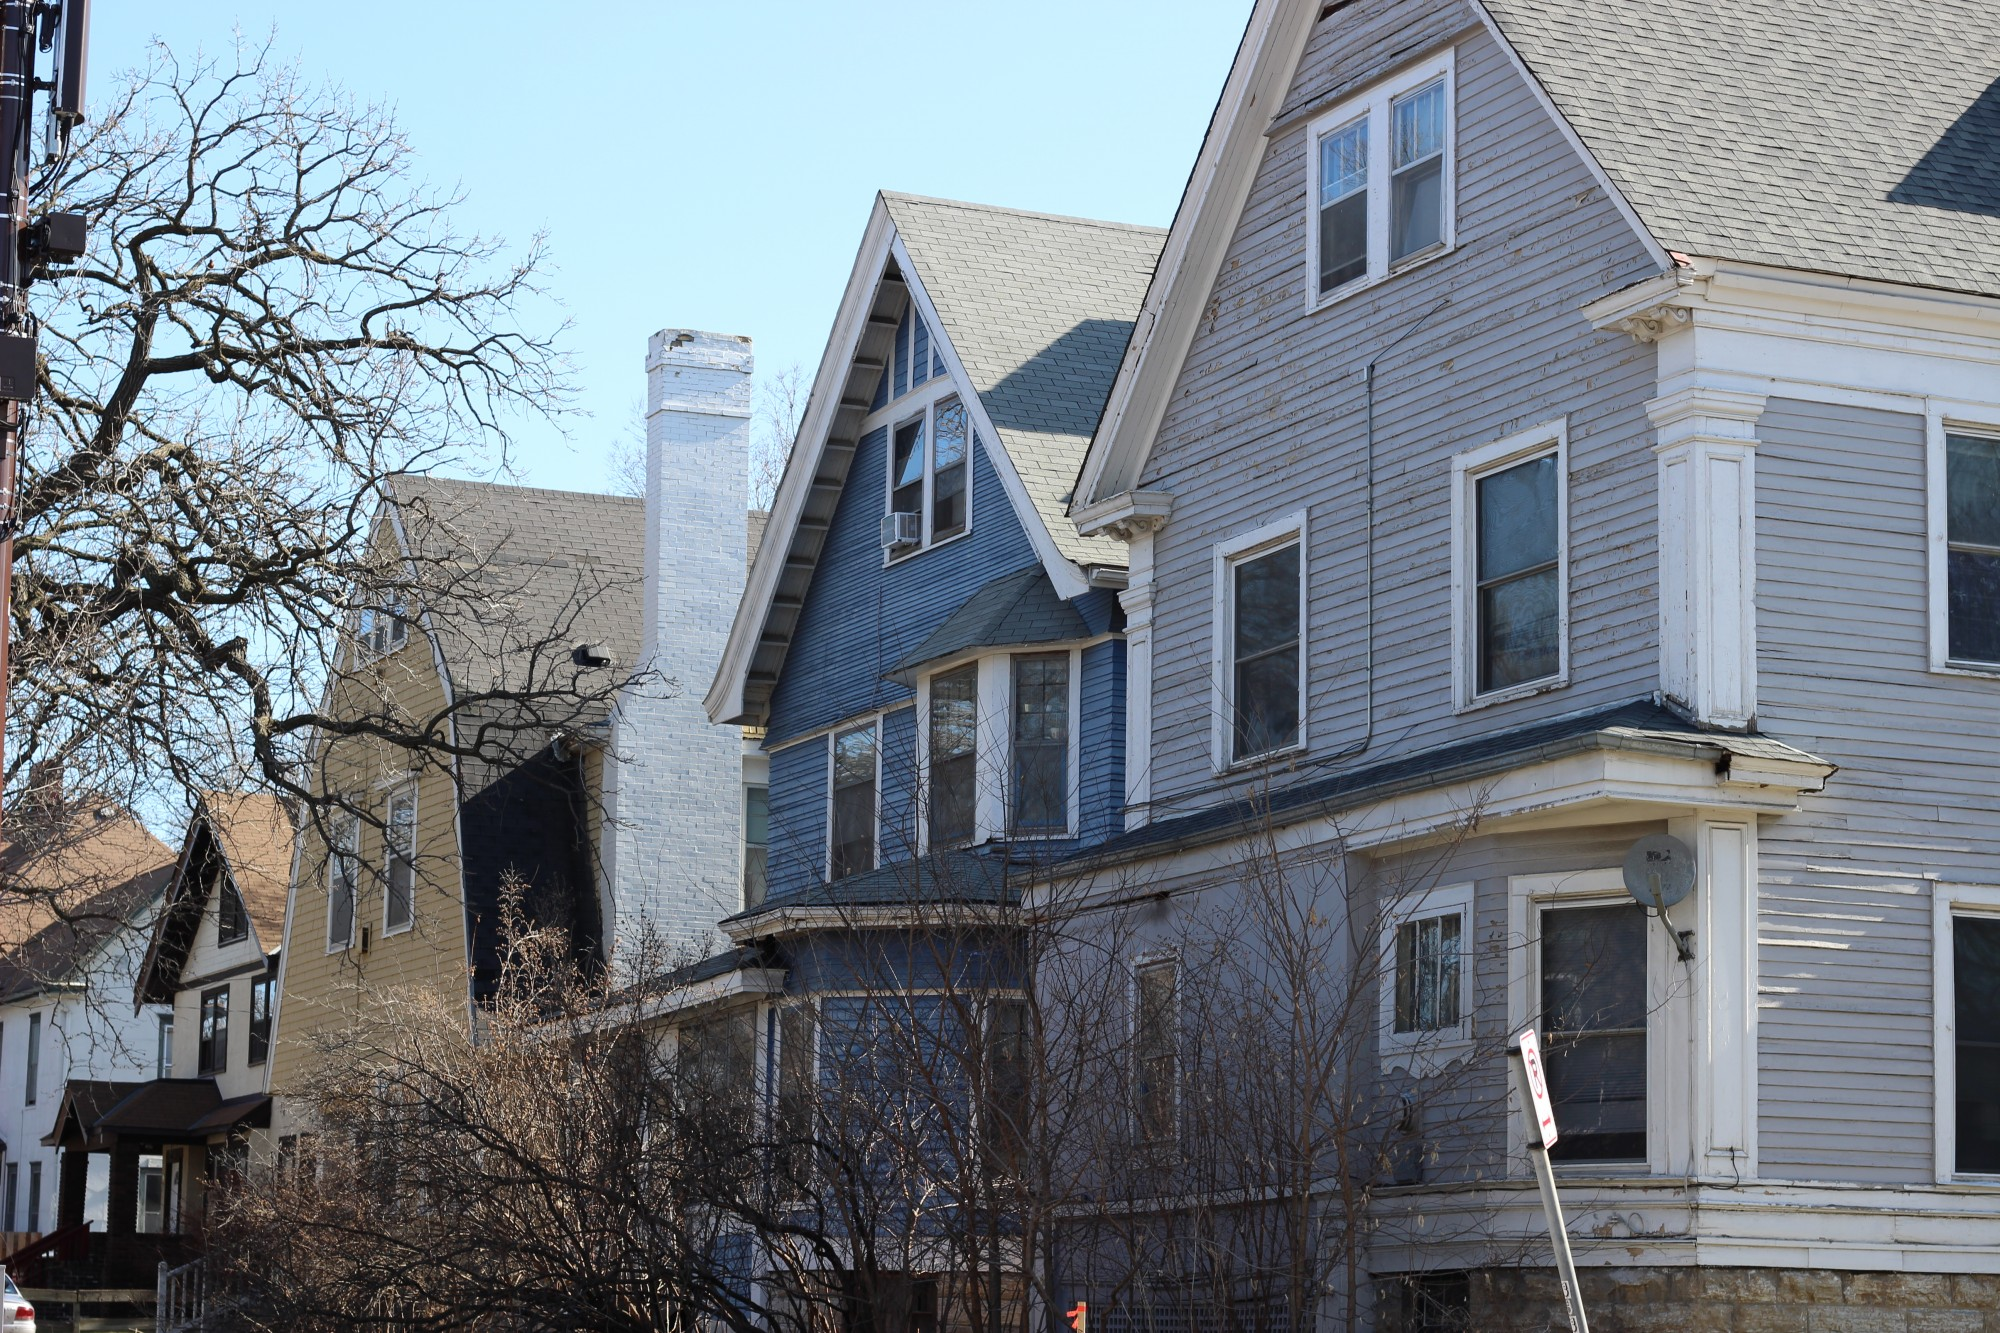 Three houses under consideration for demolition are seen in Marcy-Holmes on Sunday, April 5. The site could be host to a potential project with micro-unit apartments.